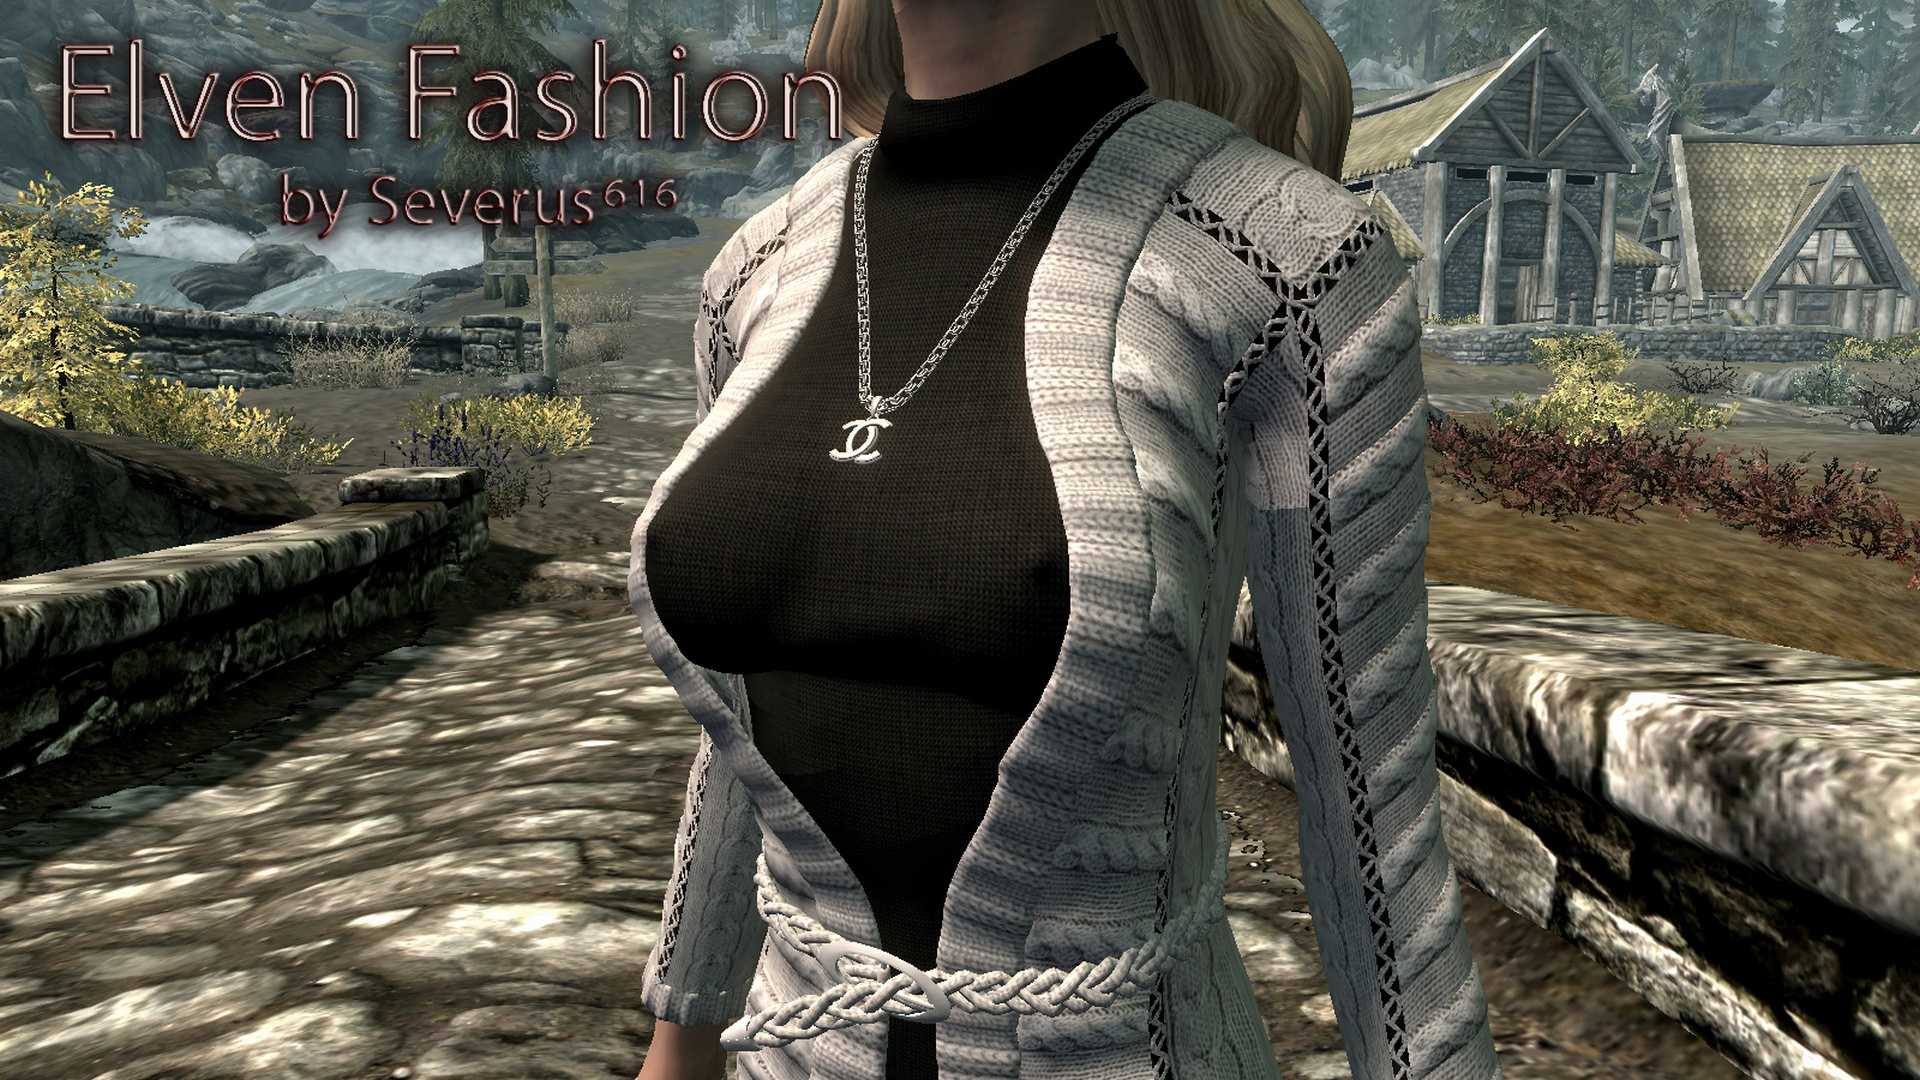 Elven_Fashion_armor.jpg